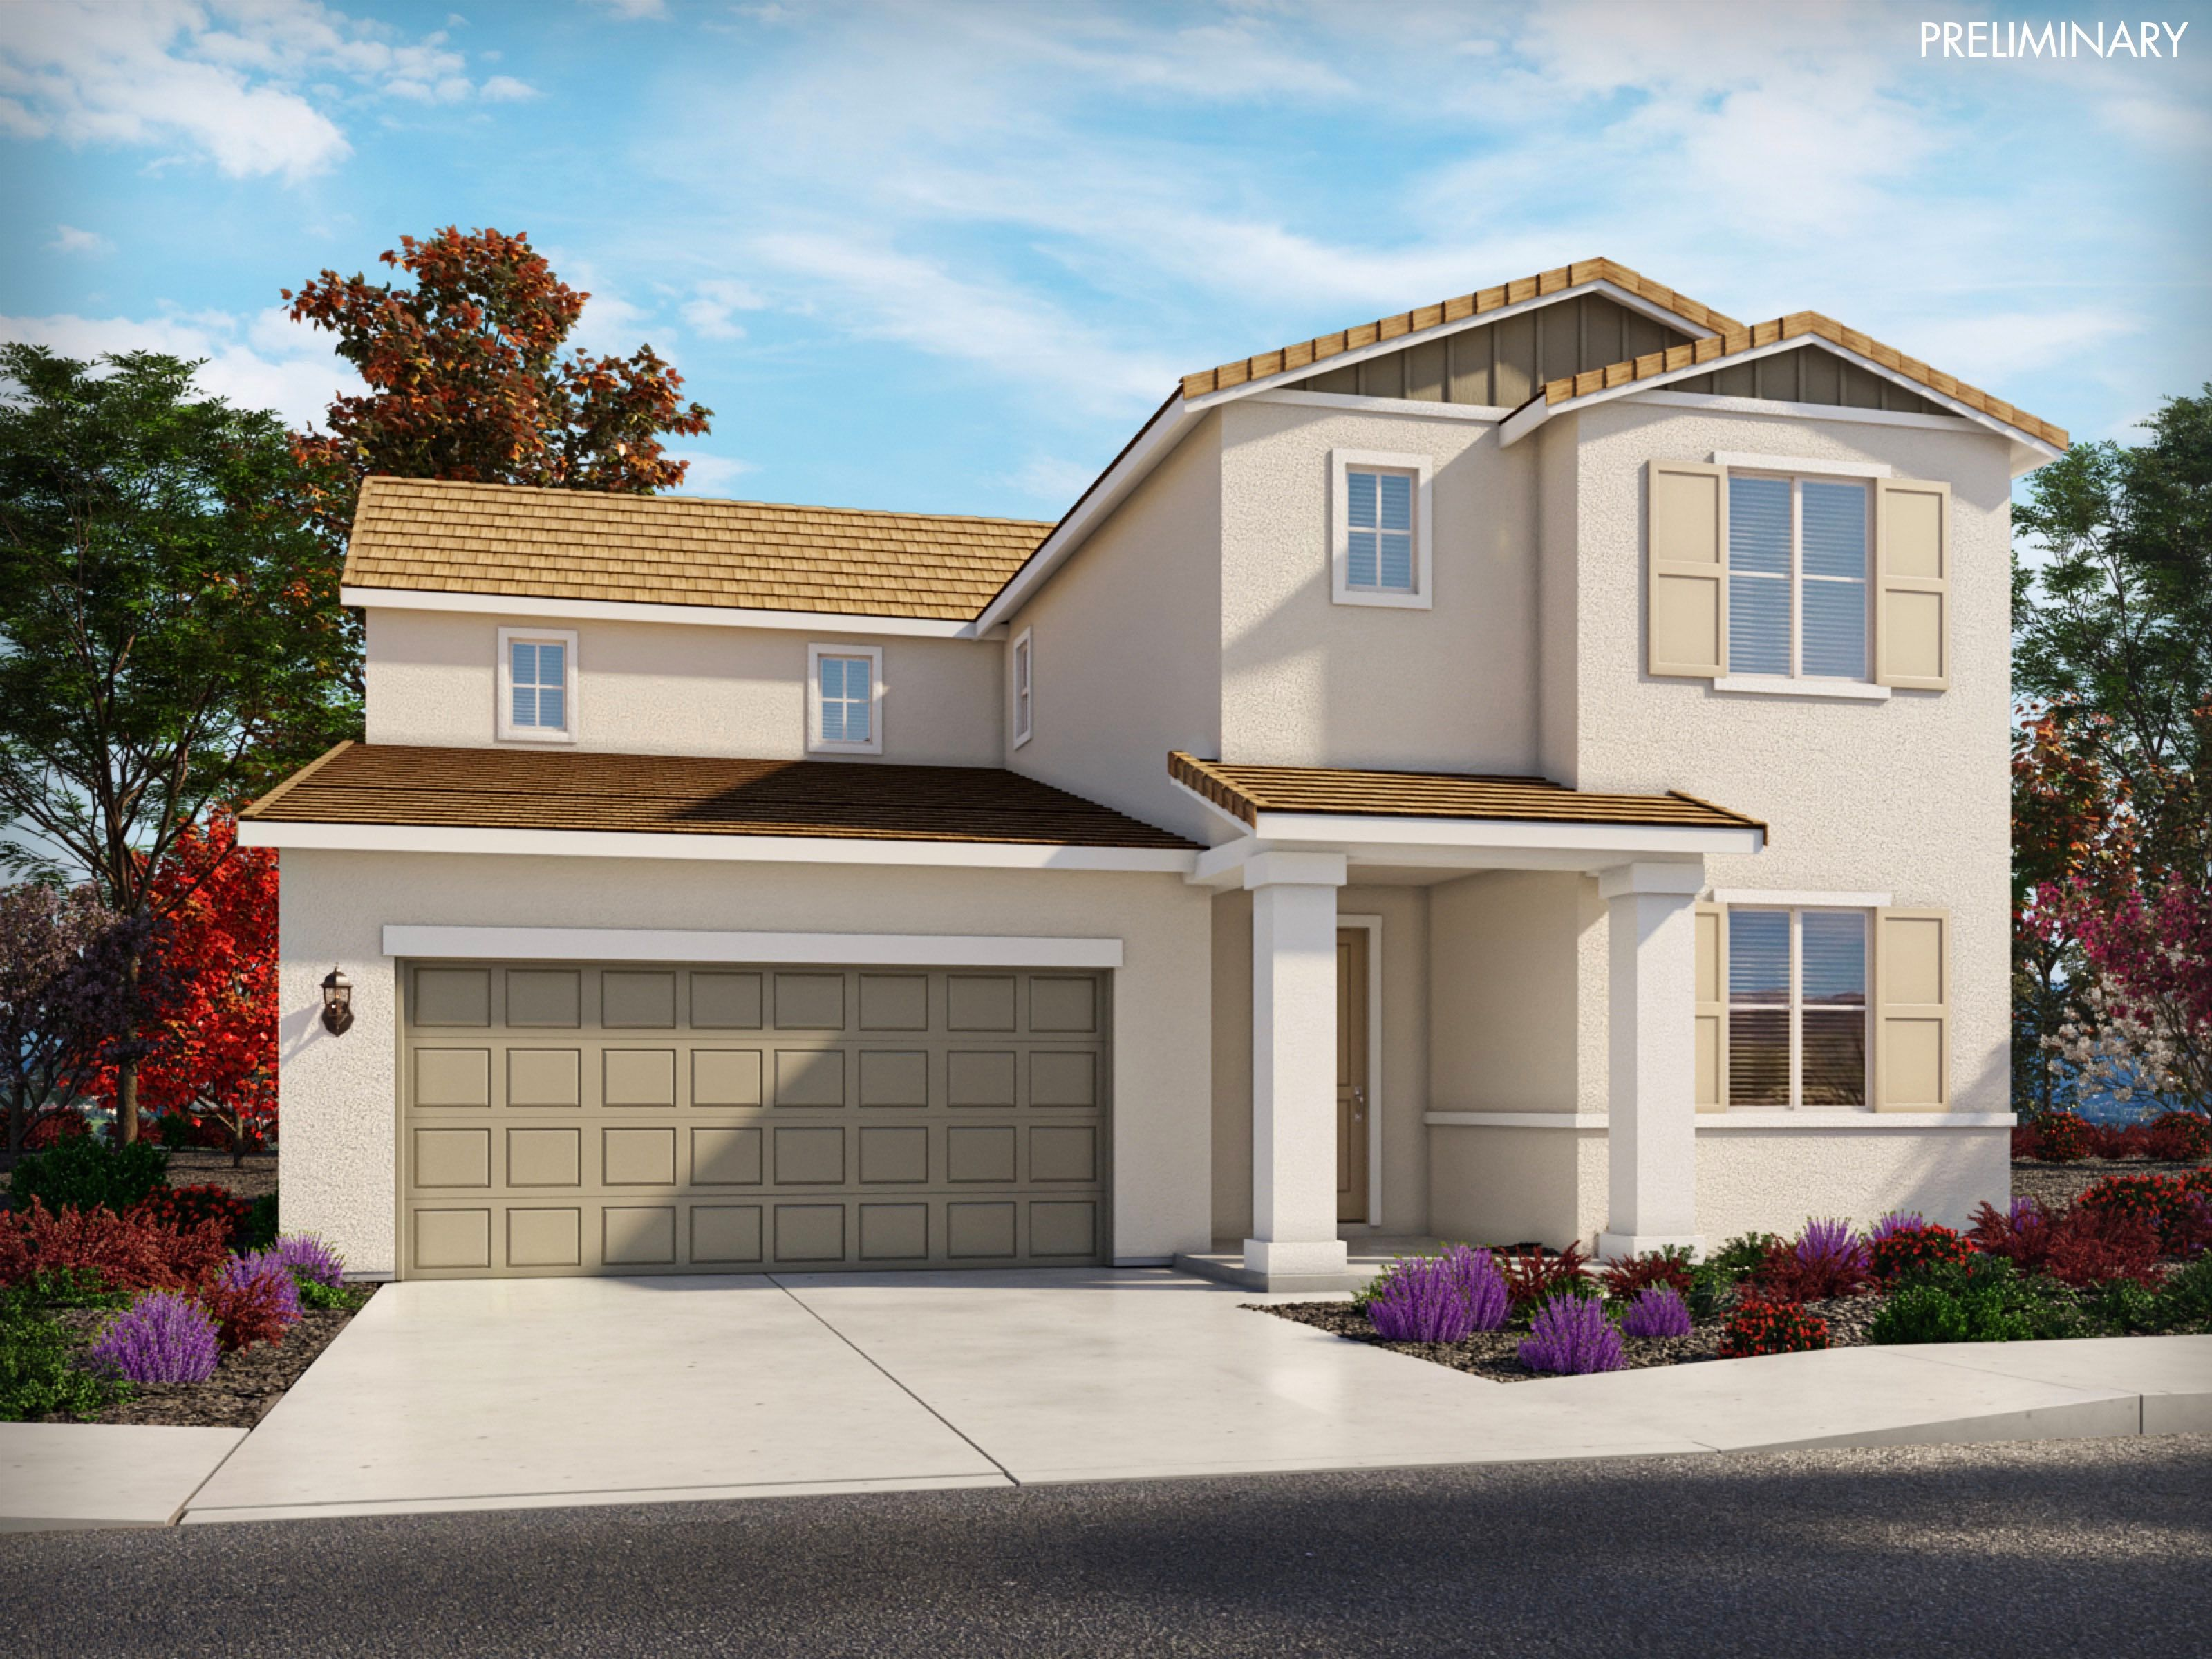 Exterior featured in the Residence 5 By Meritage Homes in Santa Cruz, CA